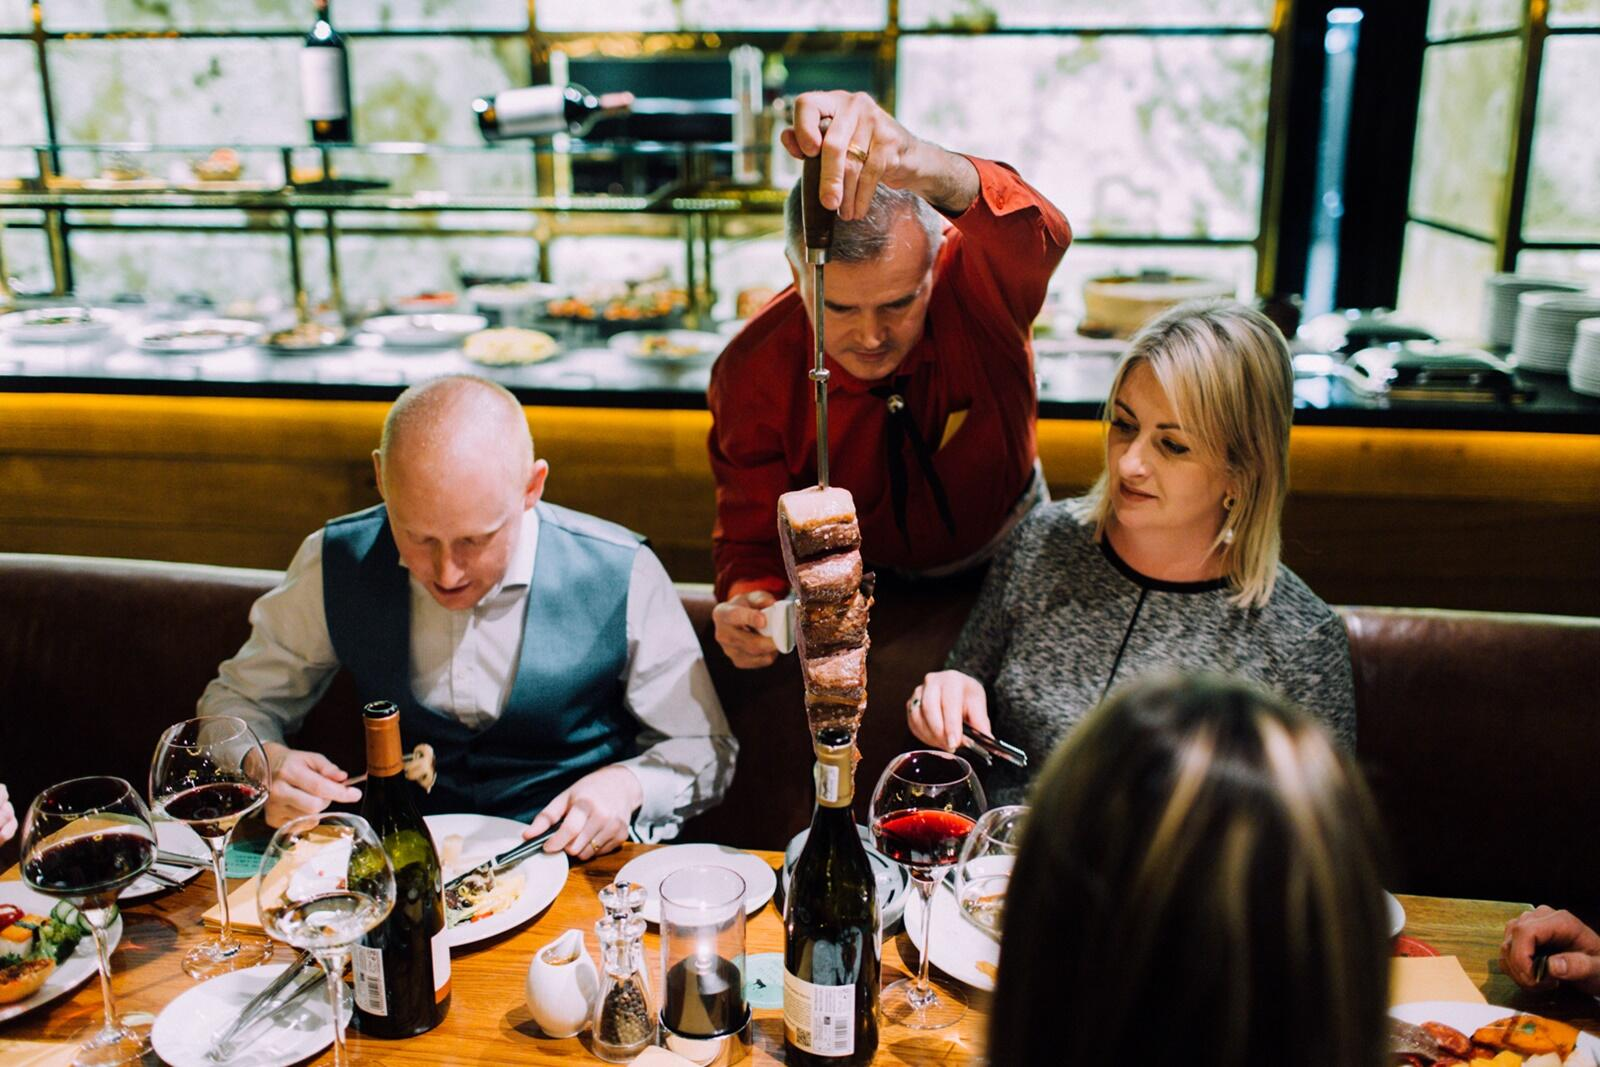 Carolyn Martin being served at Fazenda Rodizio Bar & Grill from a table-side rotisserie